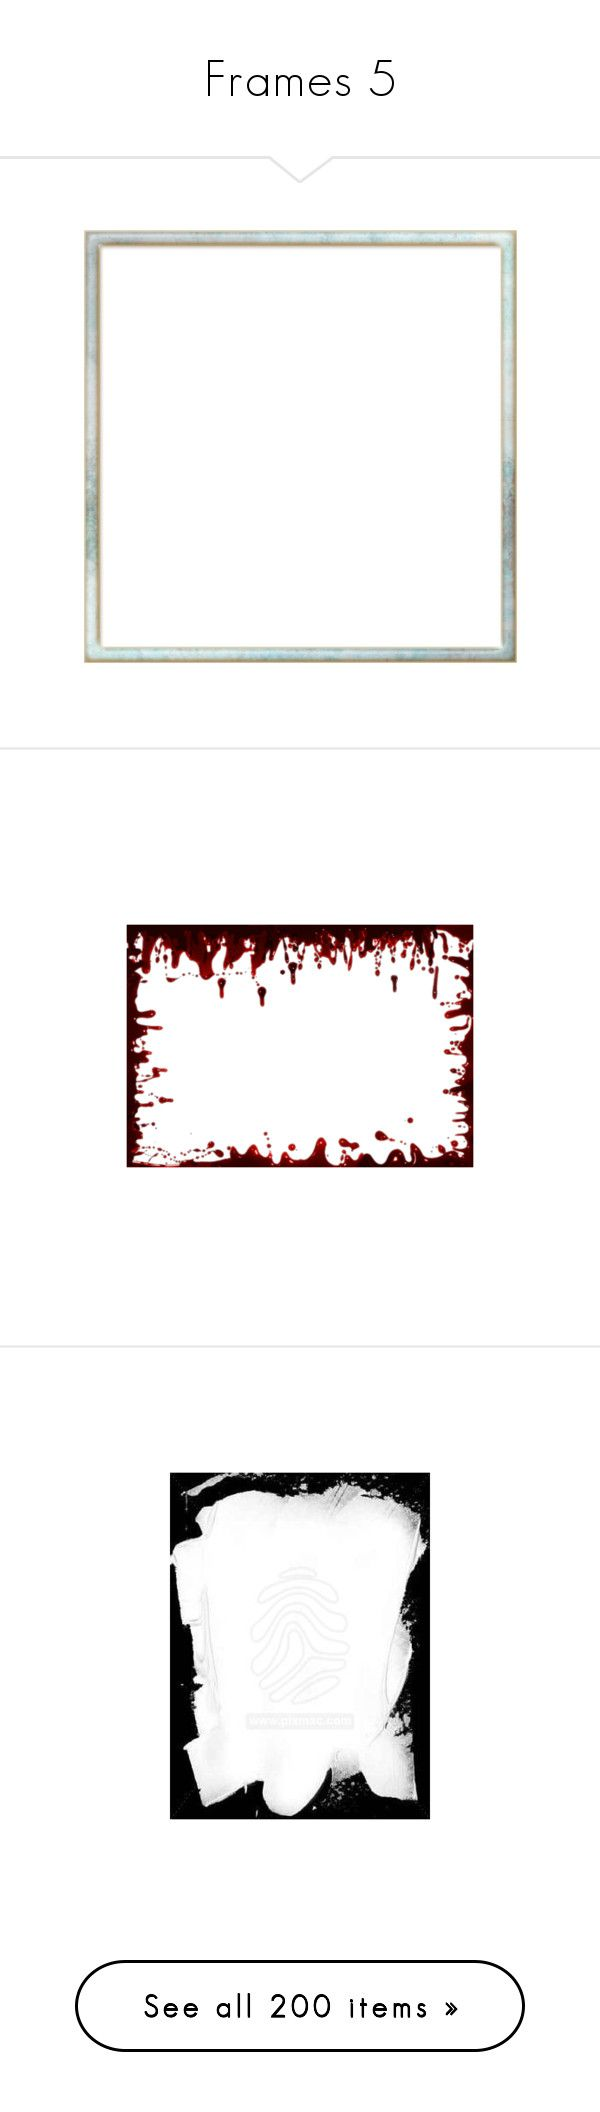 """""""Frames 5"""" by susan-holsclaw ❤ liked on Polyvore featuring frames, borders, cornici, backgrounds, outline, picture frame, blood, red, effects and ramki"""